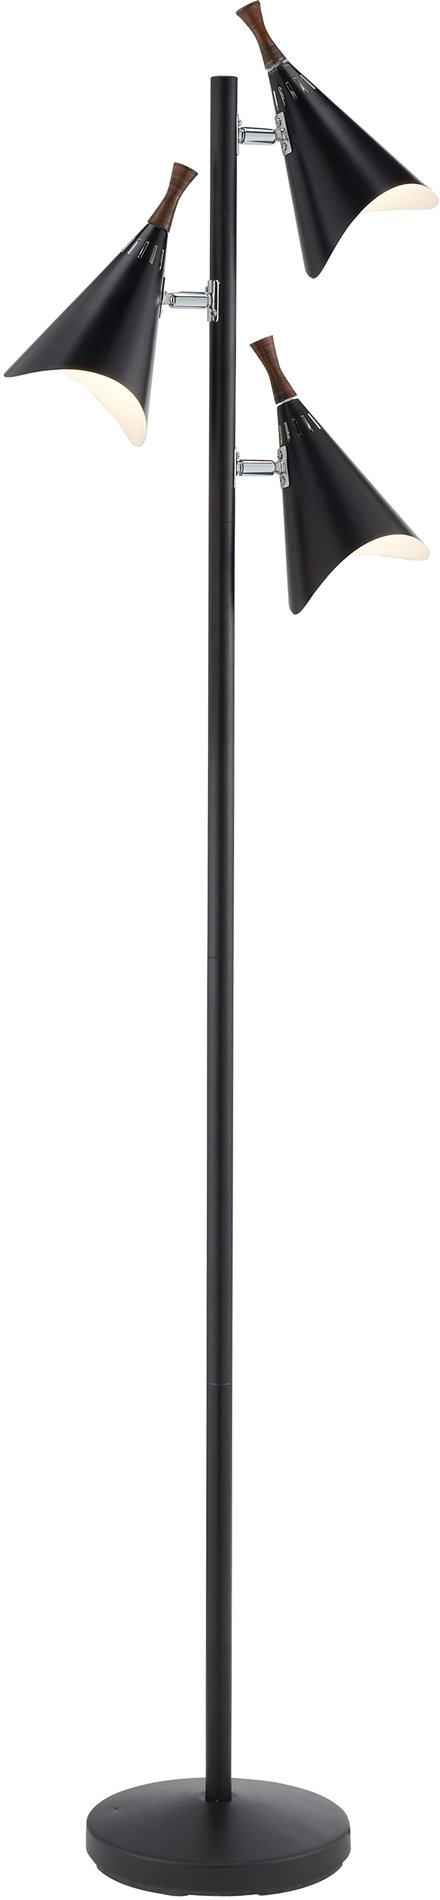 Adesso 3236 01 draper tree contemporary floor lamp ad 3236 01 for Draper 3 light tree floor lamp